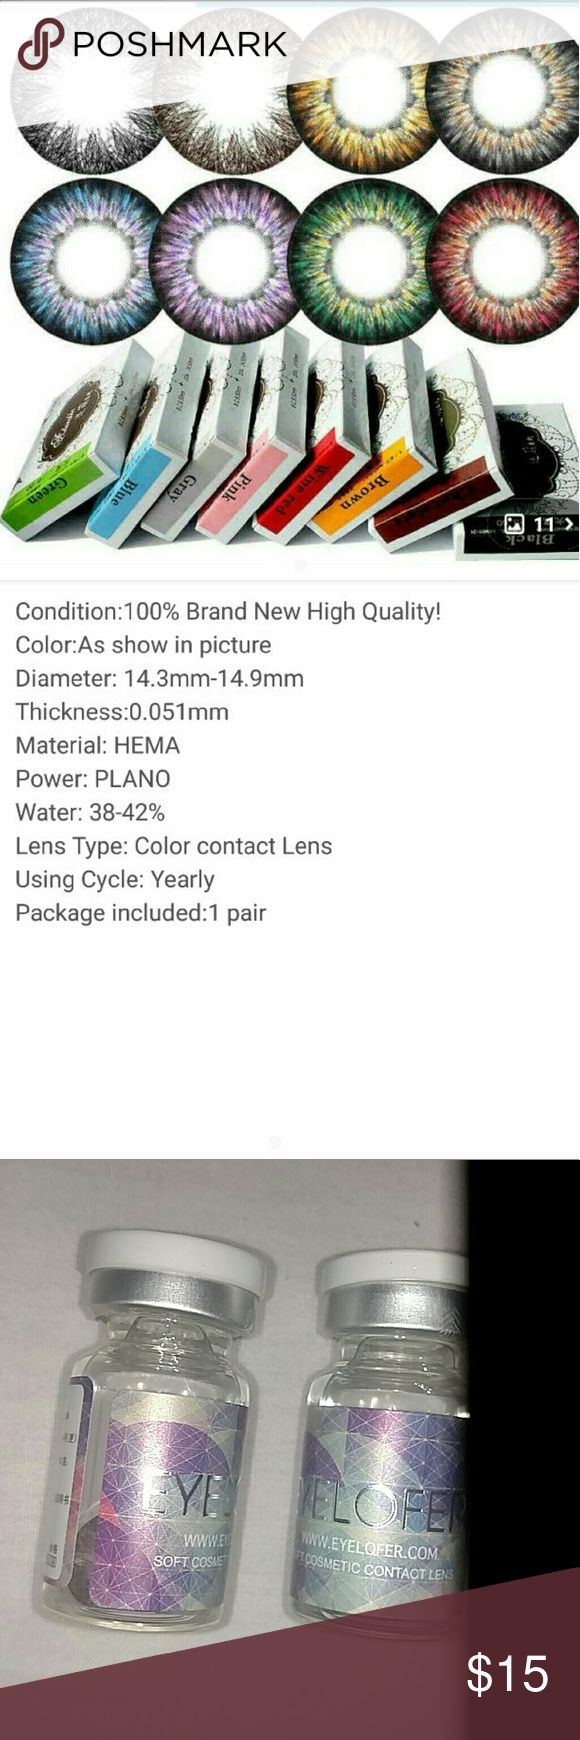 BROWN COLORED NON PRESCRIPTION CONTACT LENSES BROWN COLORED NON PRESCRIPTION CONTACT LENSES   ITEM WILL ARRIVE IN A Vial Versus A Box. Other